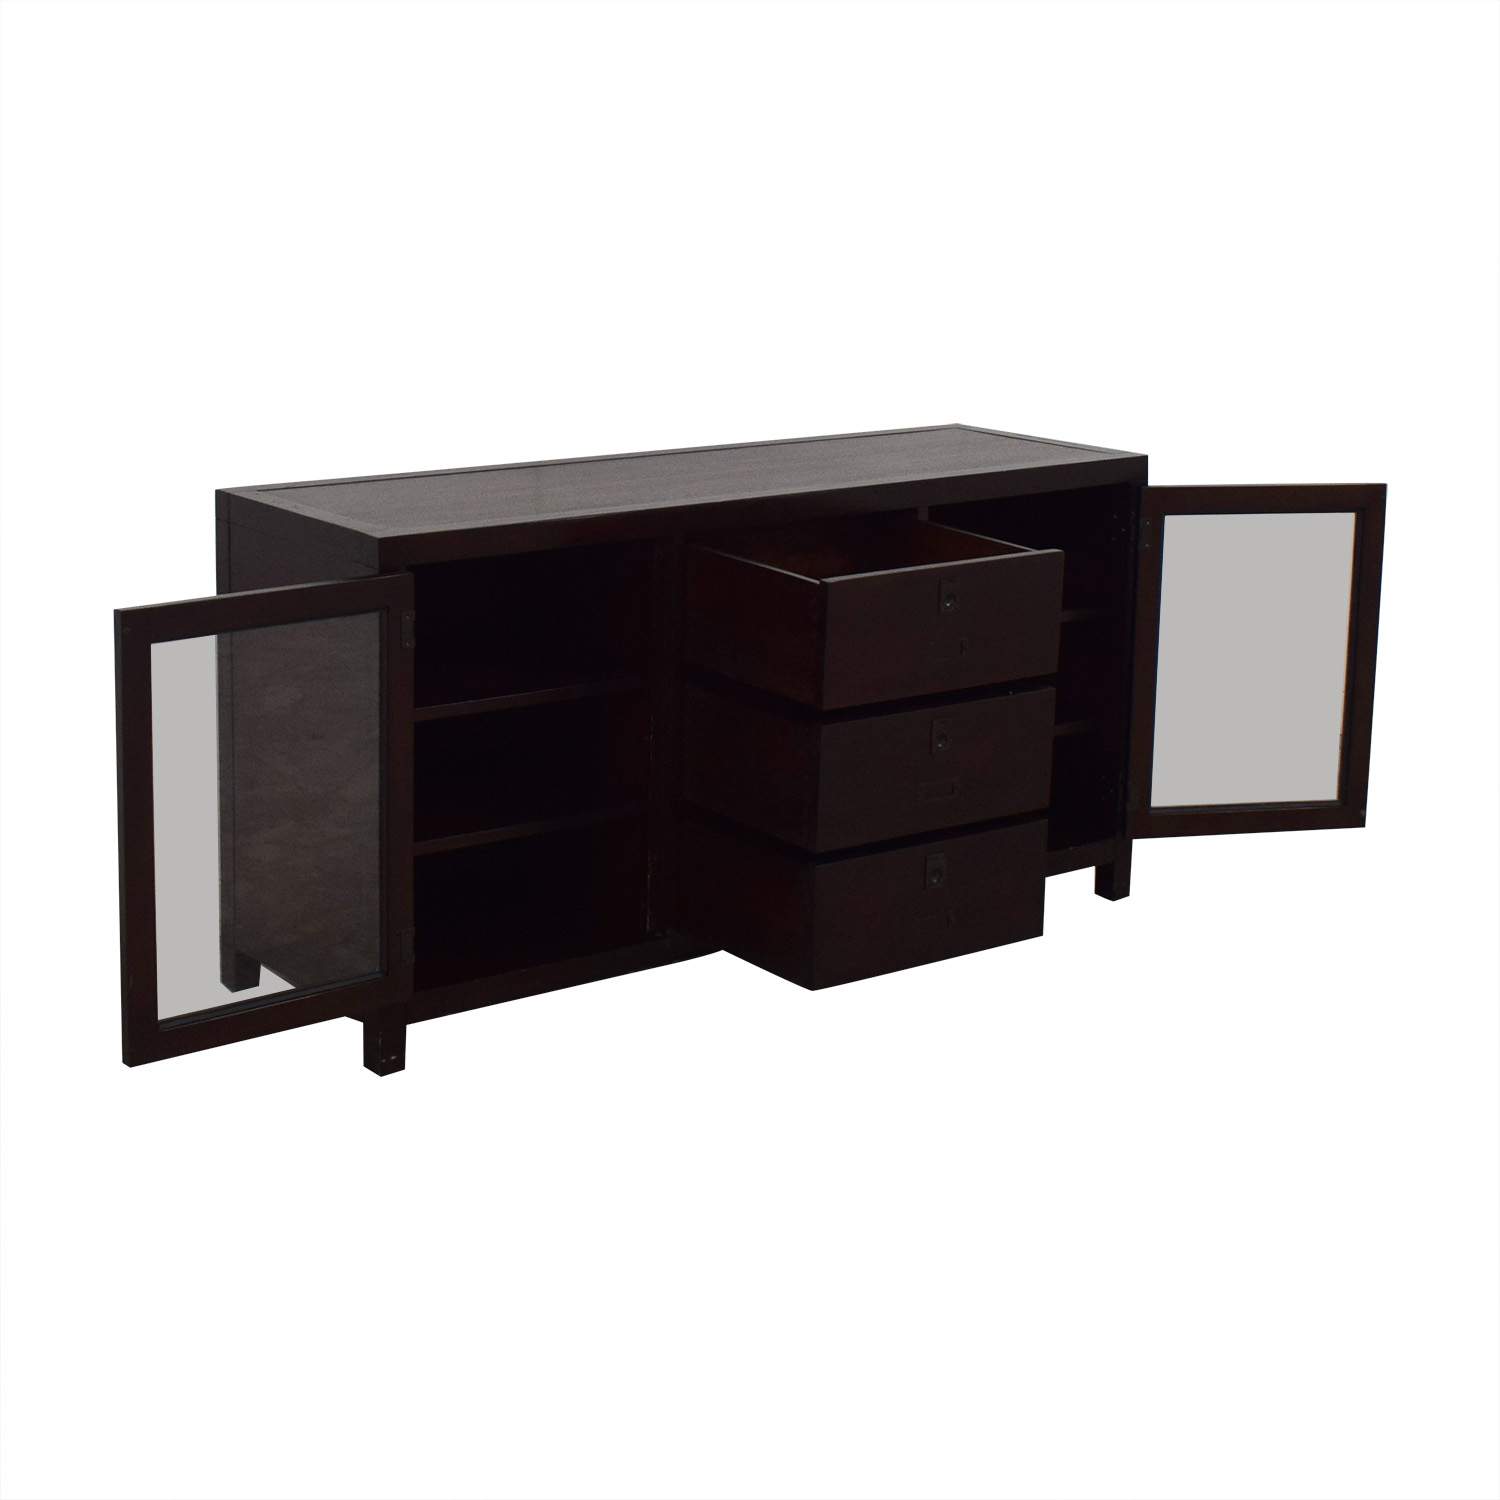 Crate & Barrel Crate & Barrel Media Console brown